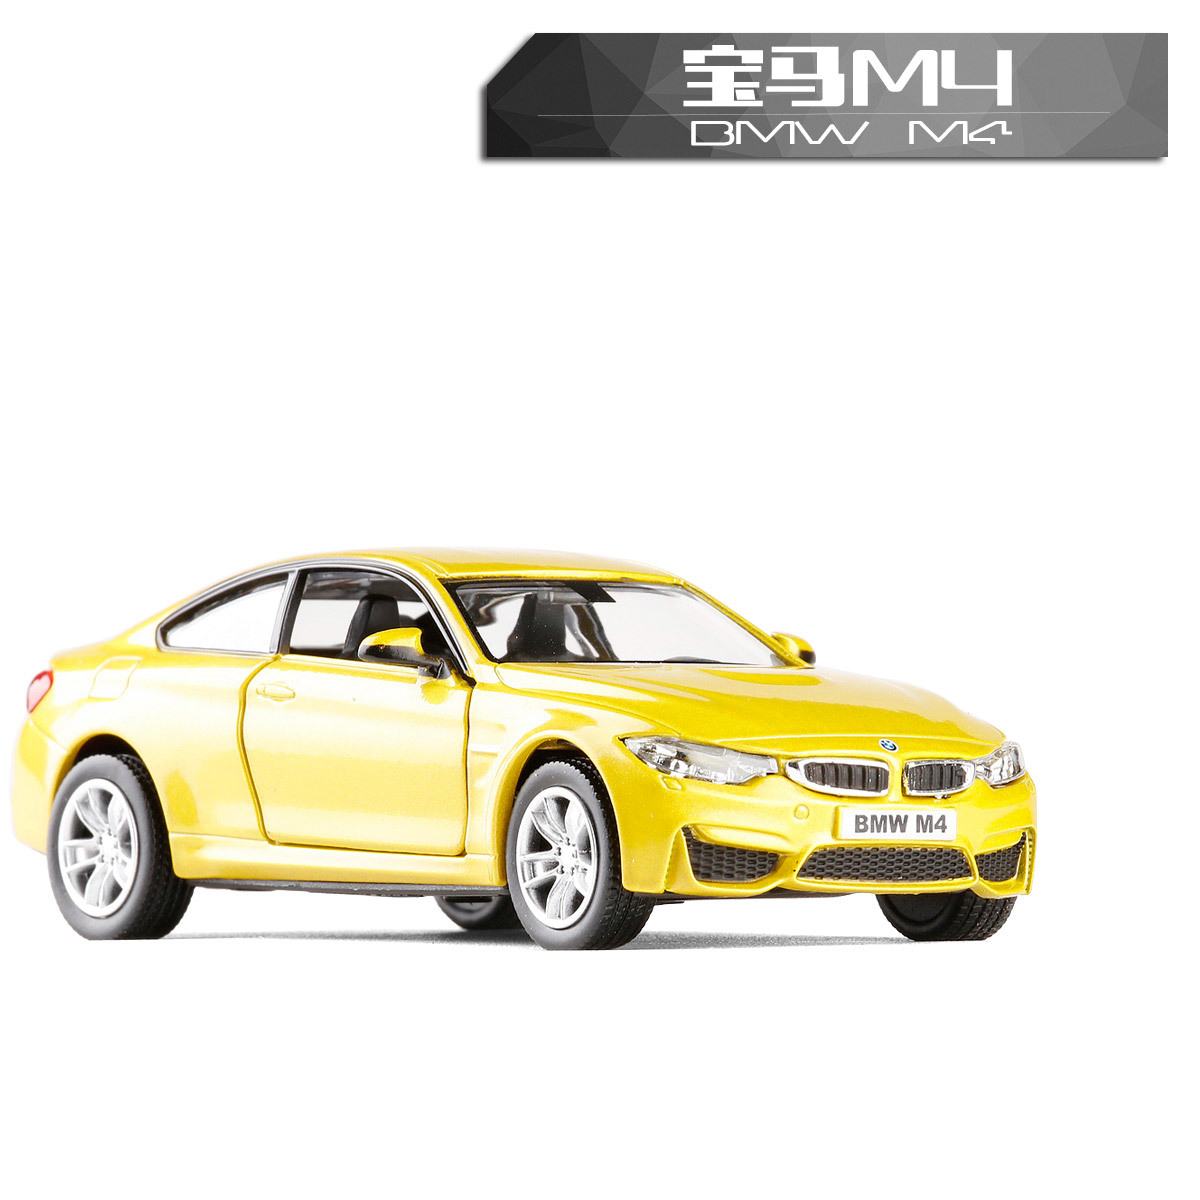 1:36 RMZ High Simulation City Exquisite Metal BMWToy Vehicles Car Styling M4 Limousine Alloy Diecast Pull Back Model Kid Toy Car